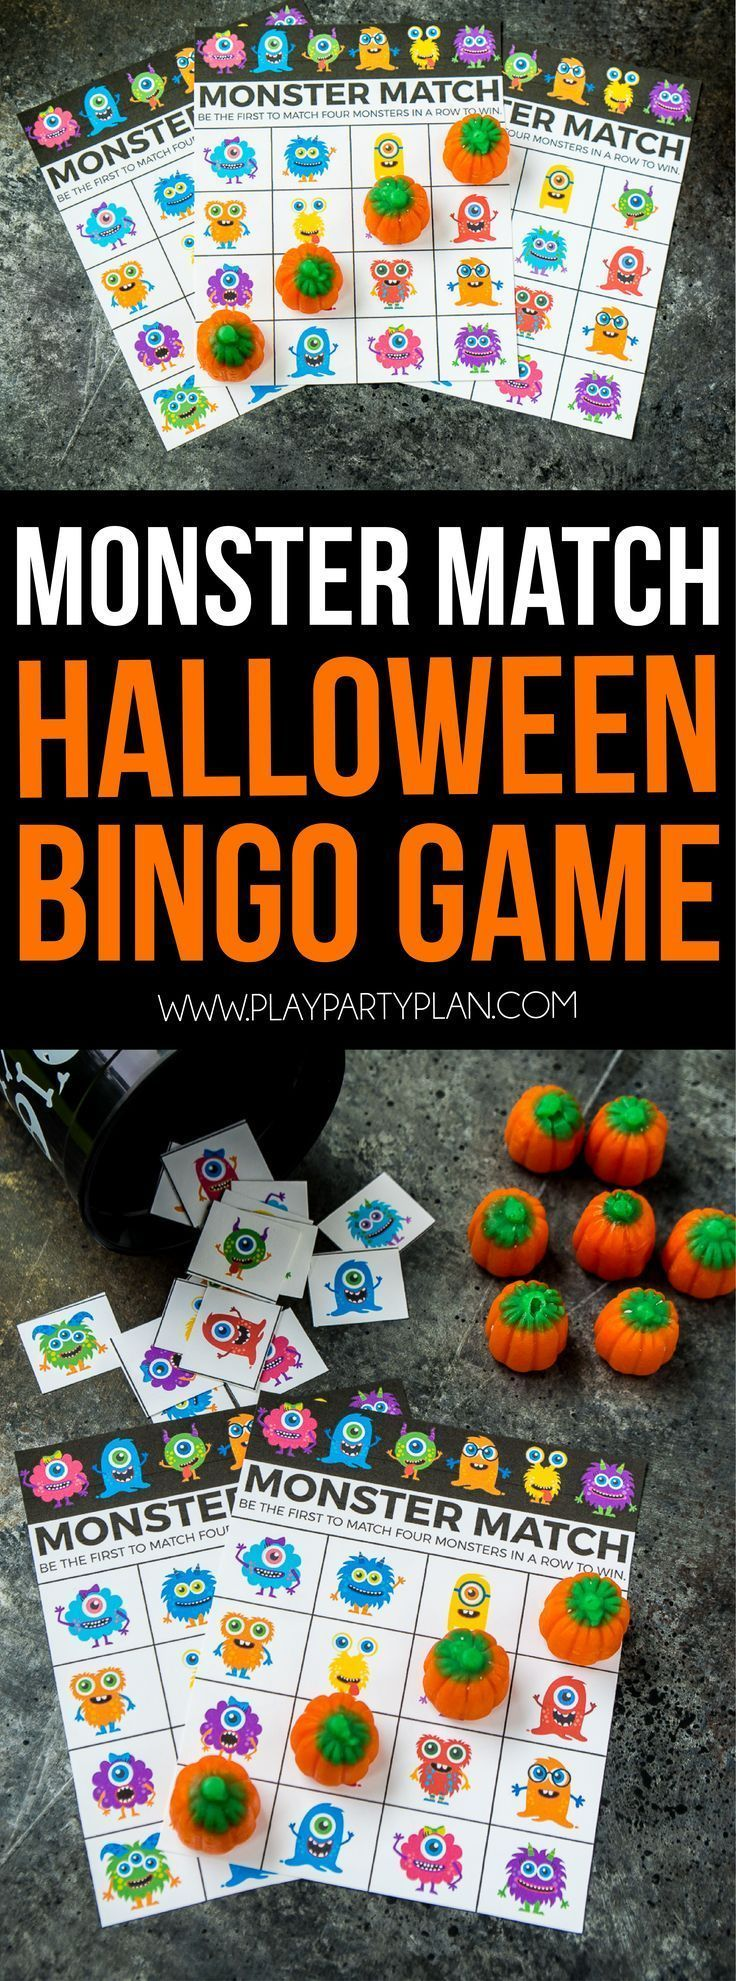 This monster match game is one of the cutest Halloween games ever! Play at a classroom Halloween party, Halloween party for children, or even a trunk or treat. Such a fun DIY game that works for toddlers, for preschool, or even for kindergarten aged kids! Cutest Halloween bingo game ever!